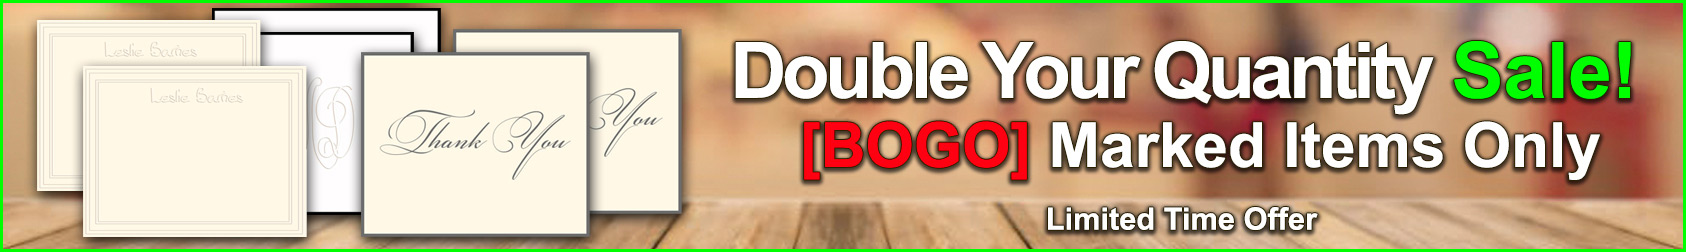 Double Your Quantity Sale at StationeryXpress